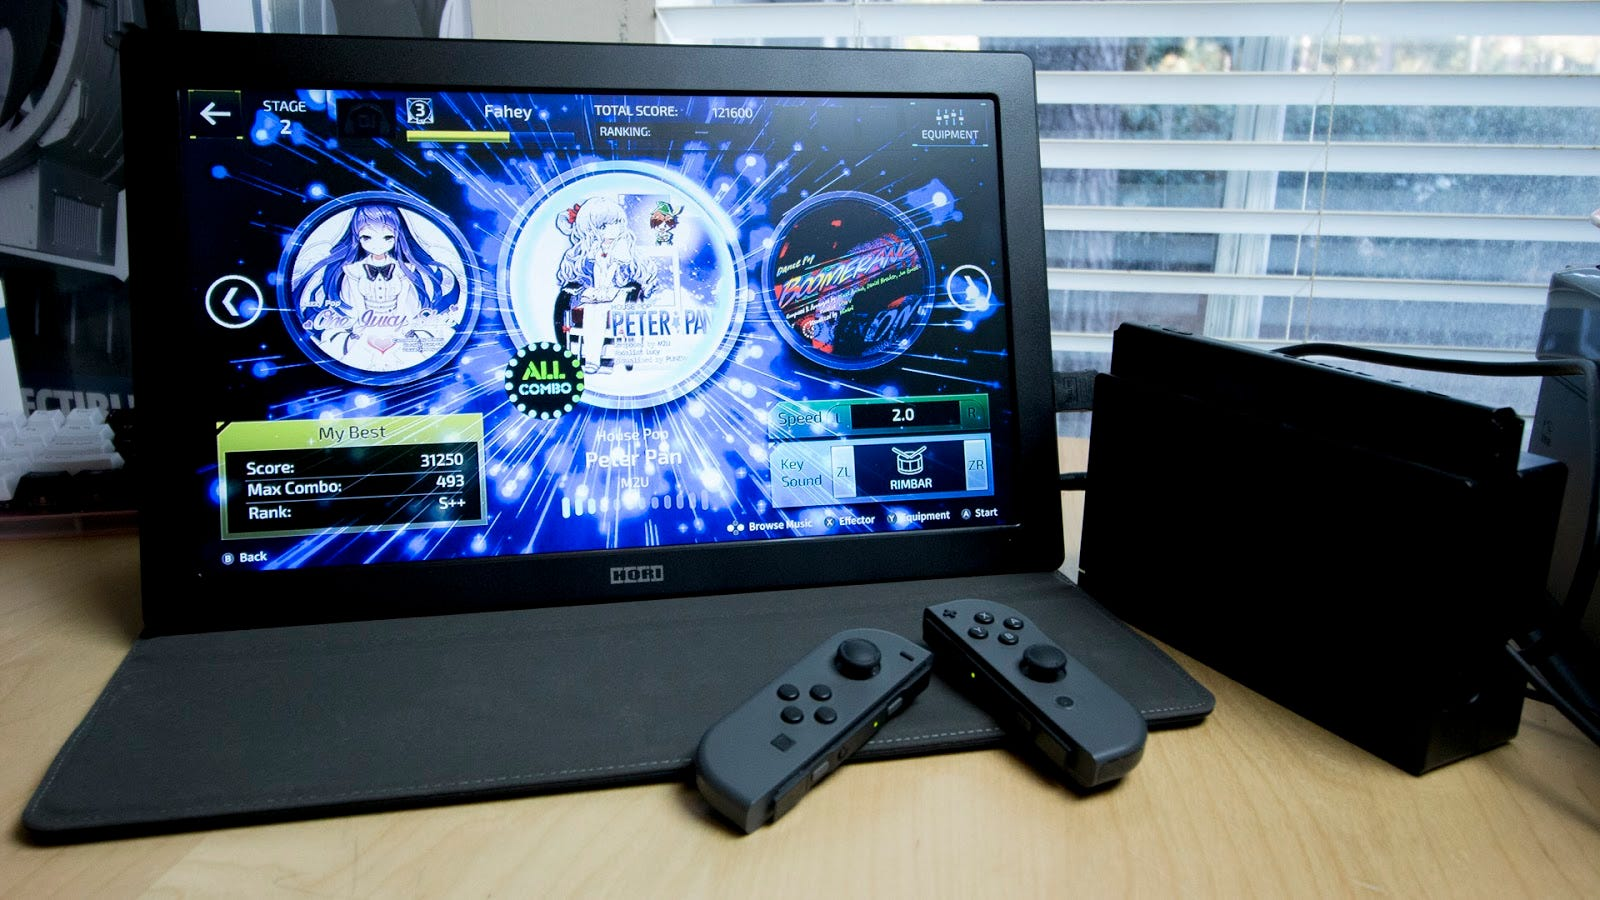 Hori's Portable Gaming Monitor Isn't Pretty, But It Works